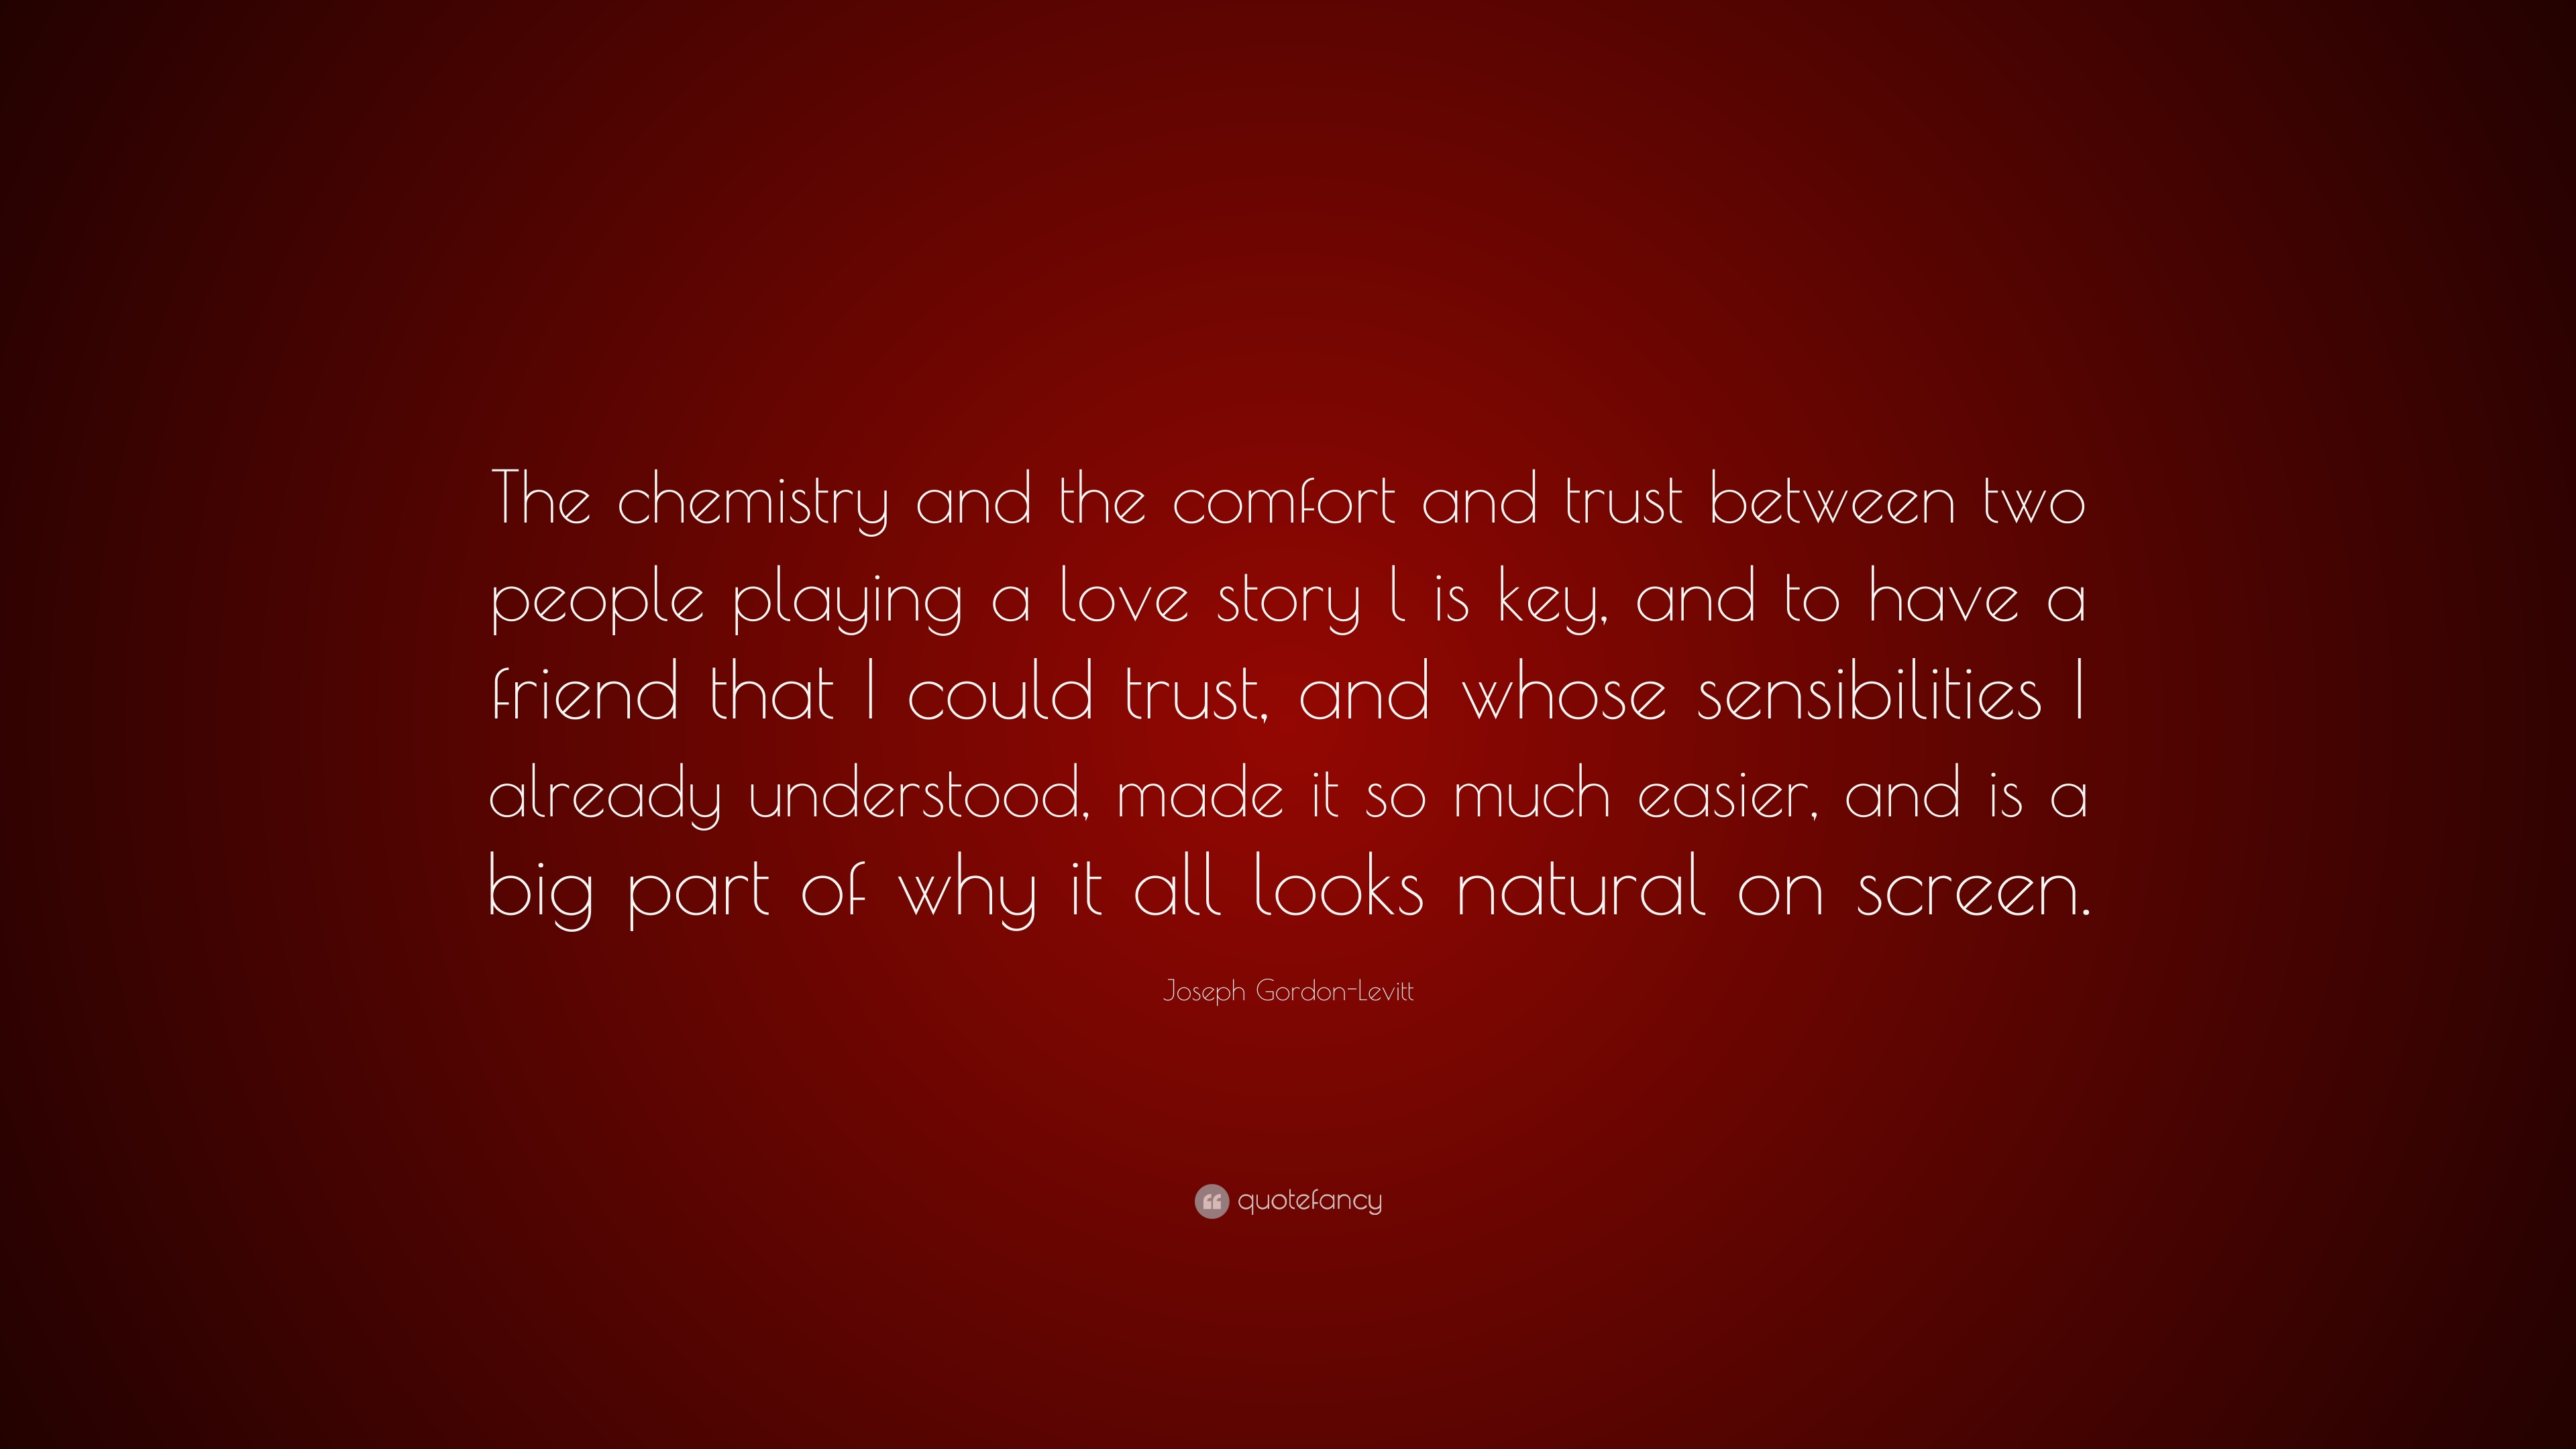 Chemistry between two people